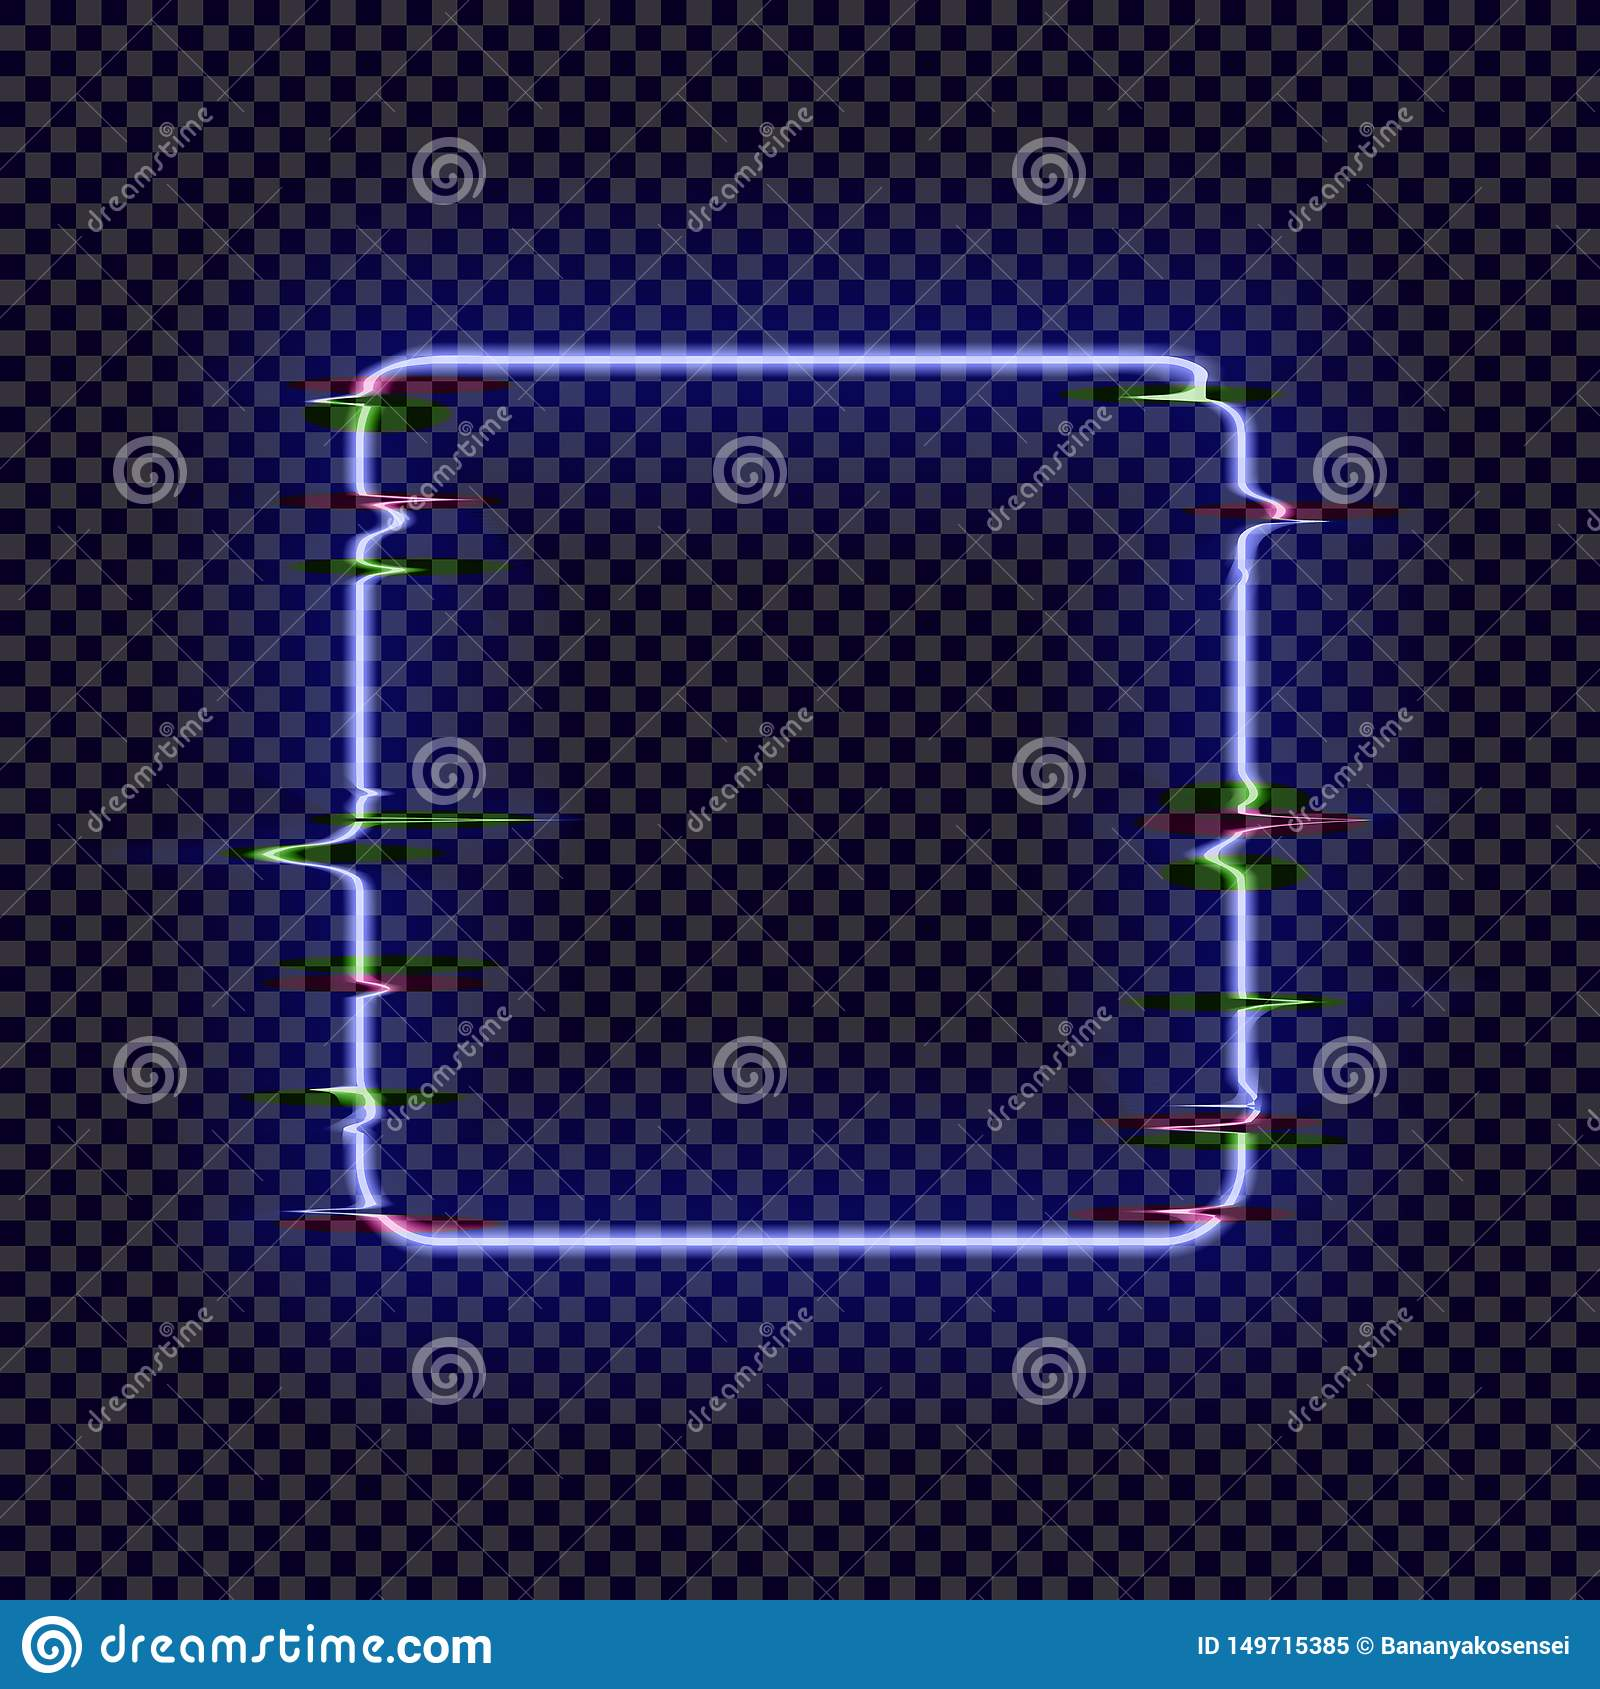 Vector Neon Square Frame with Glitch Effect Isolated on Dark Transparent Background, Bright Light, Abstract Illustration.